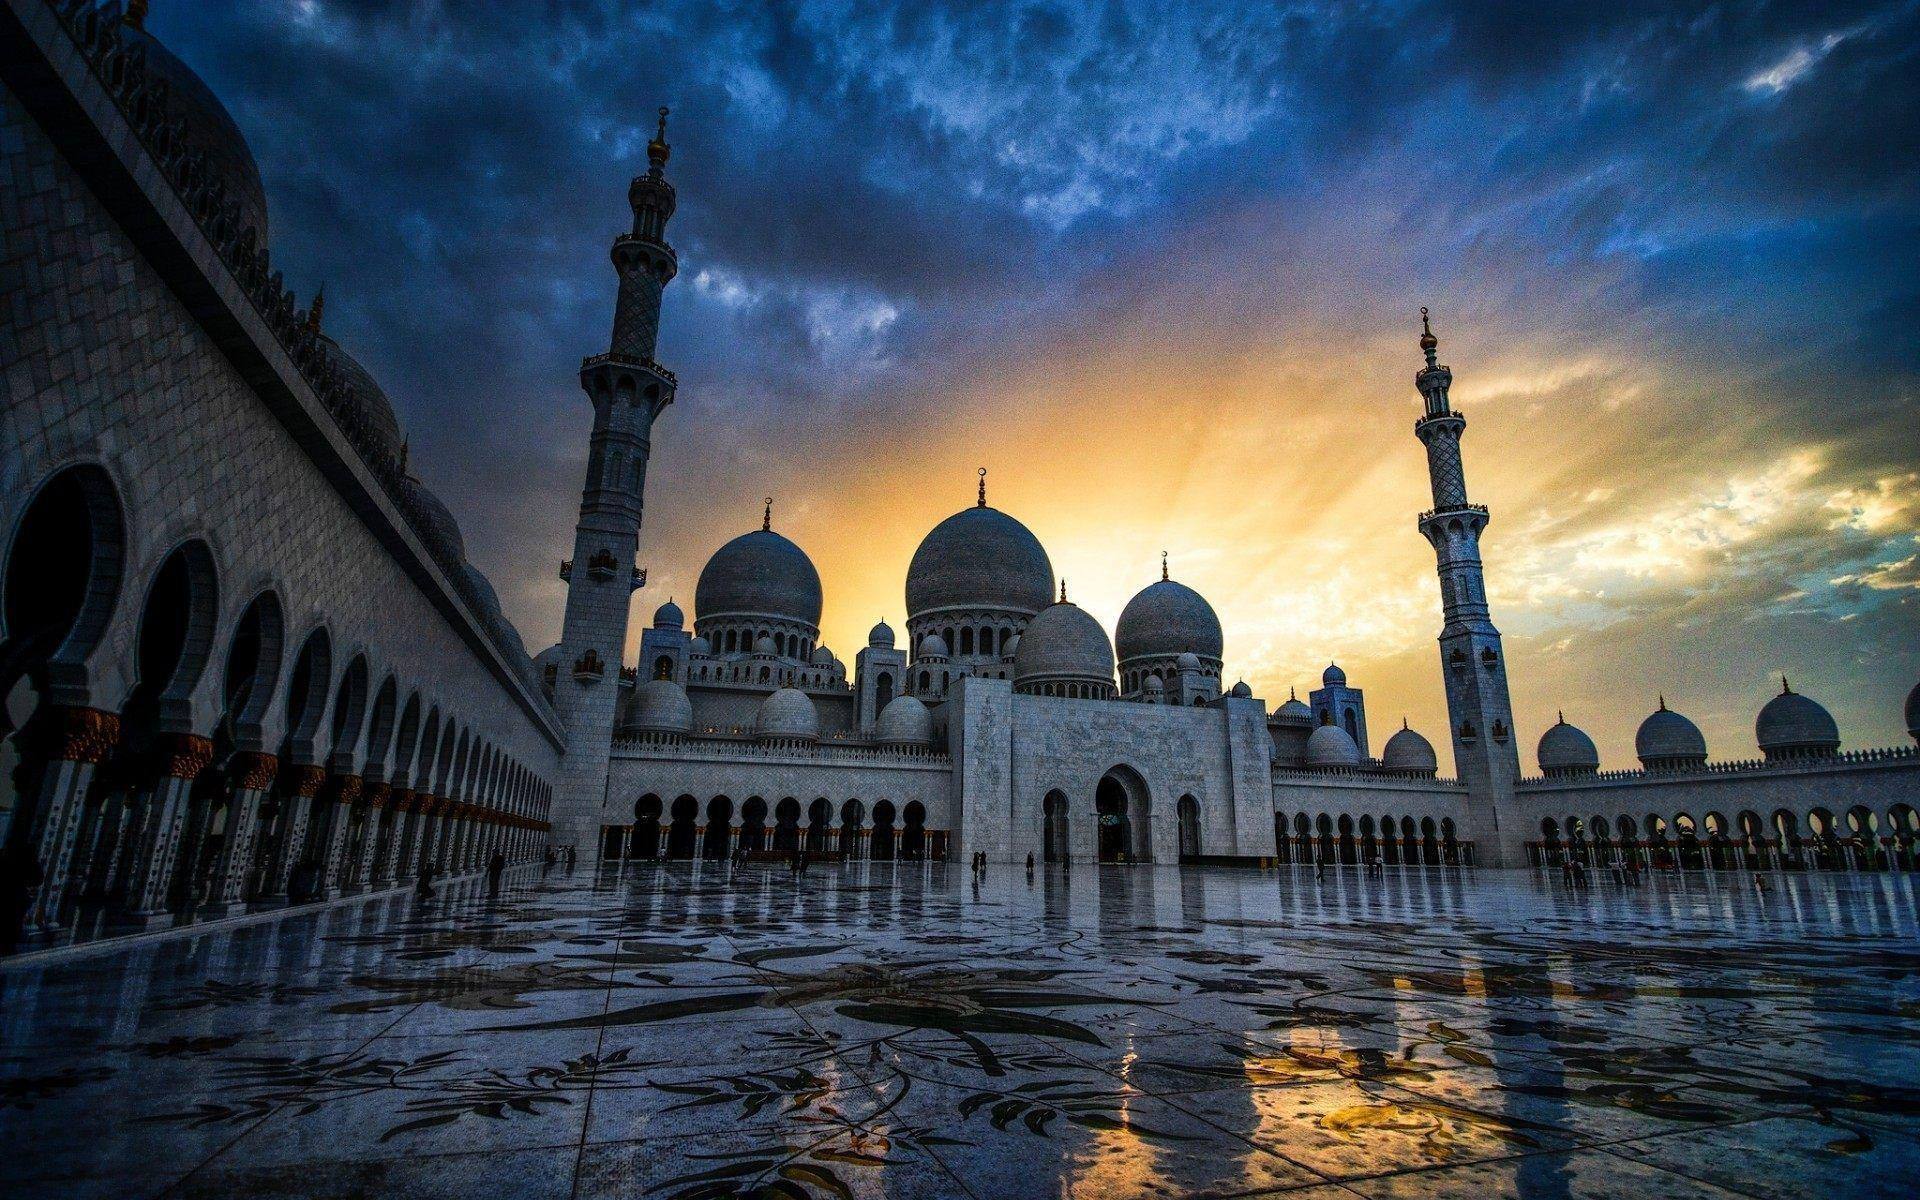 Grand Mosque Abu Dhabi Wallpapers HD For Desktop & Mobile